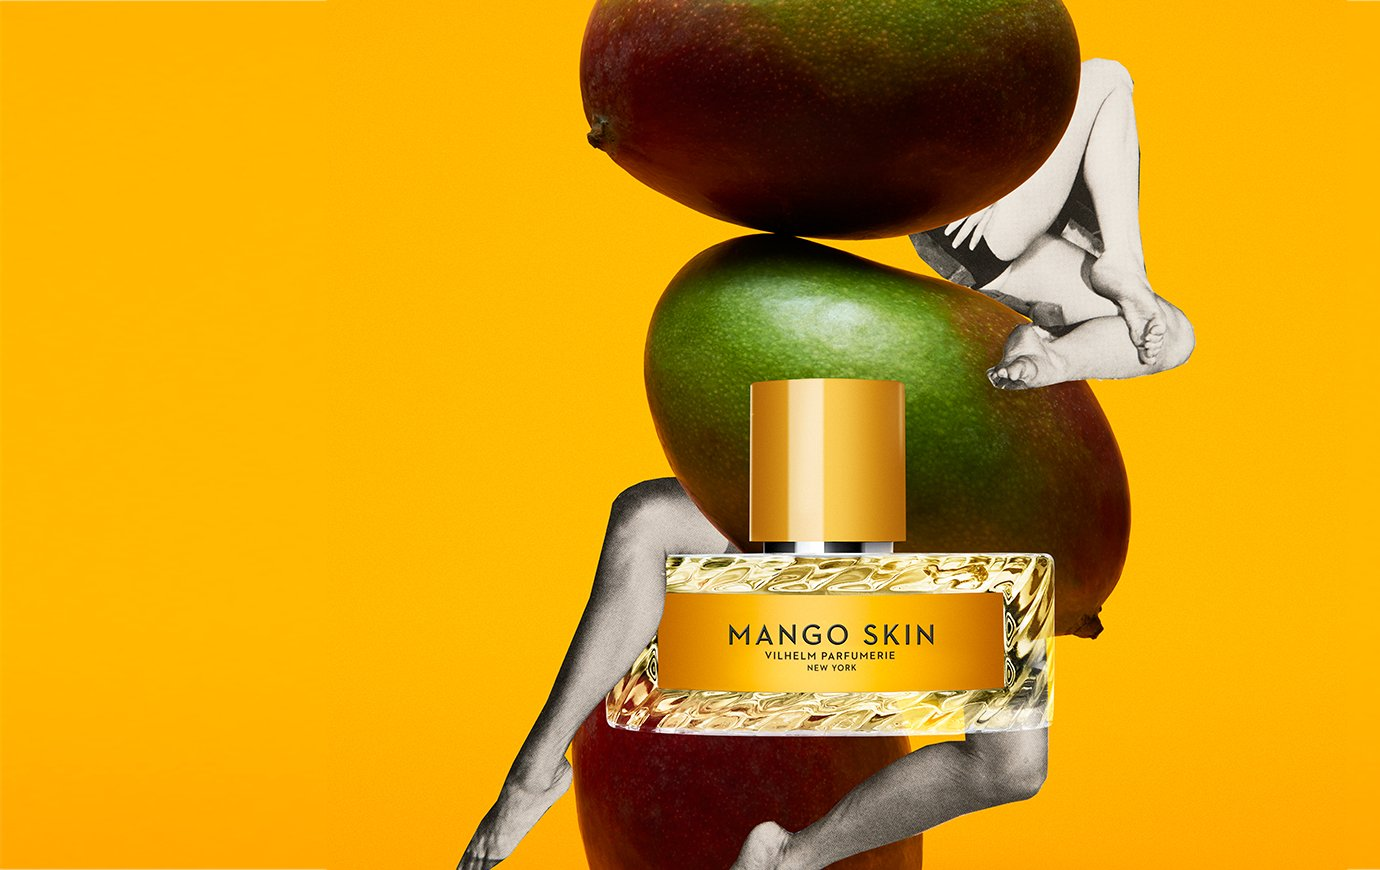 Perfume with mango smell